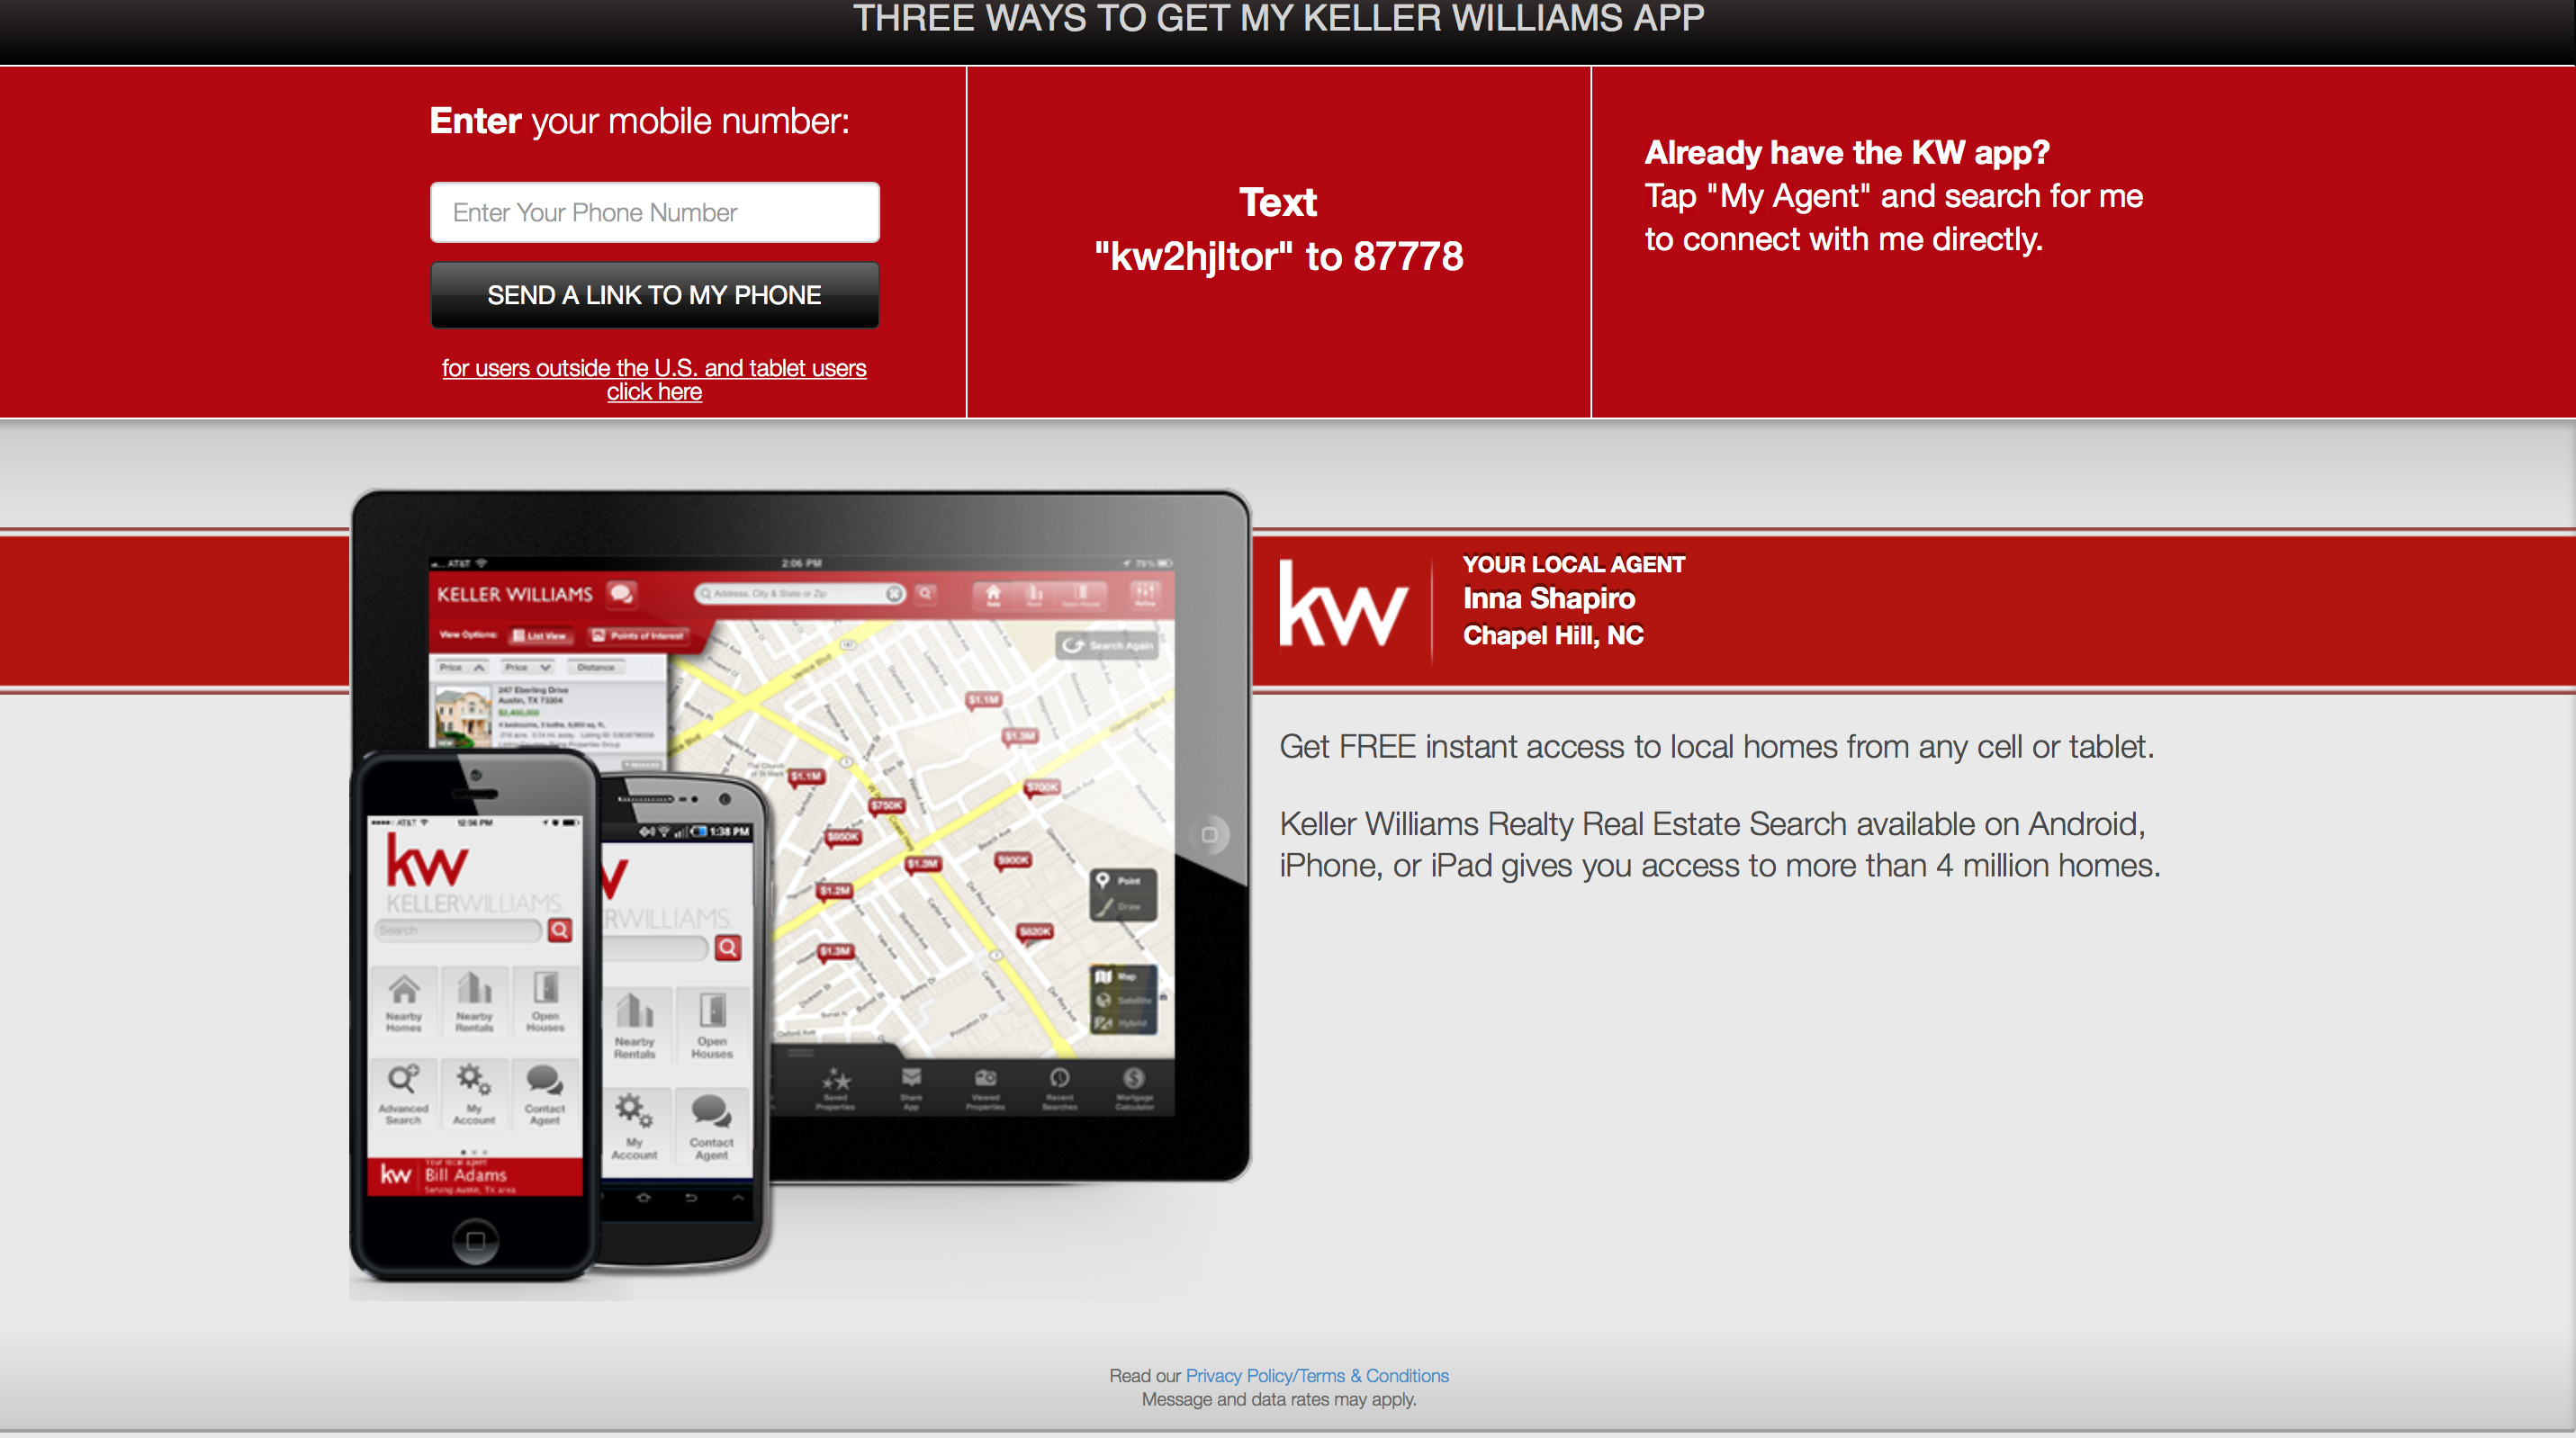 Inna Shapiro Keller Williams Chapel Hill Real Estate Agent Mobile Home Search App